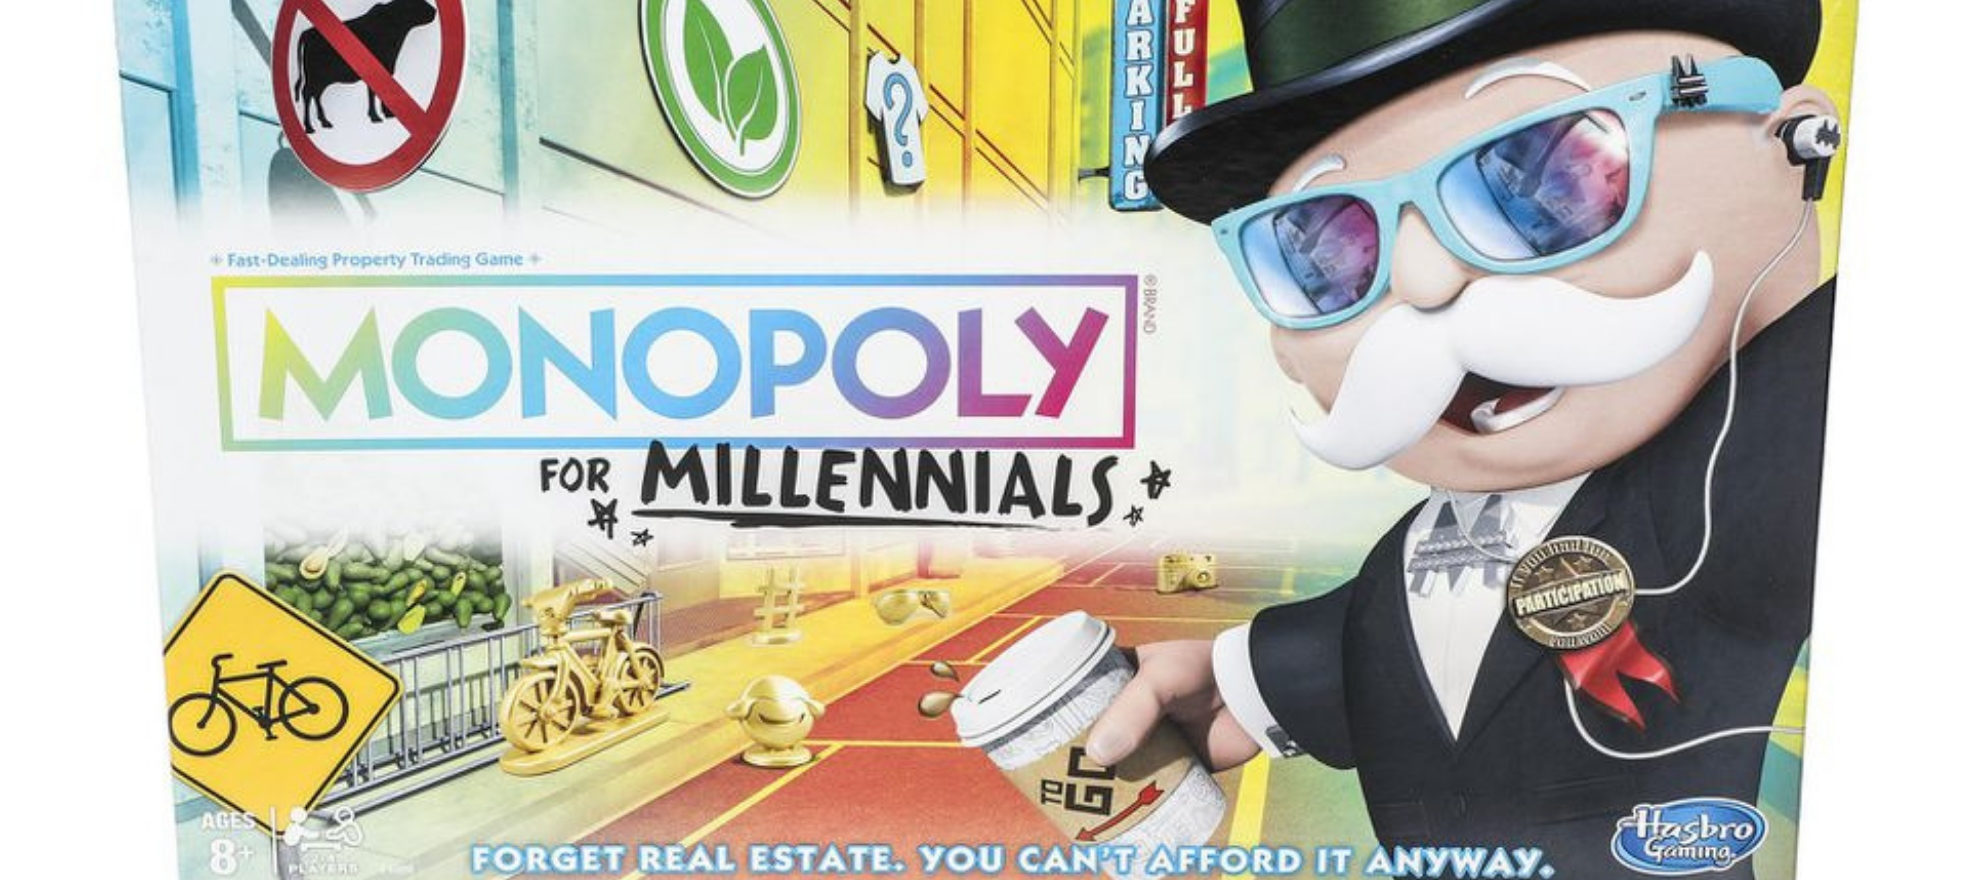 'Monopoly for Millennials' hits shelves, sans real estate